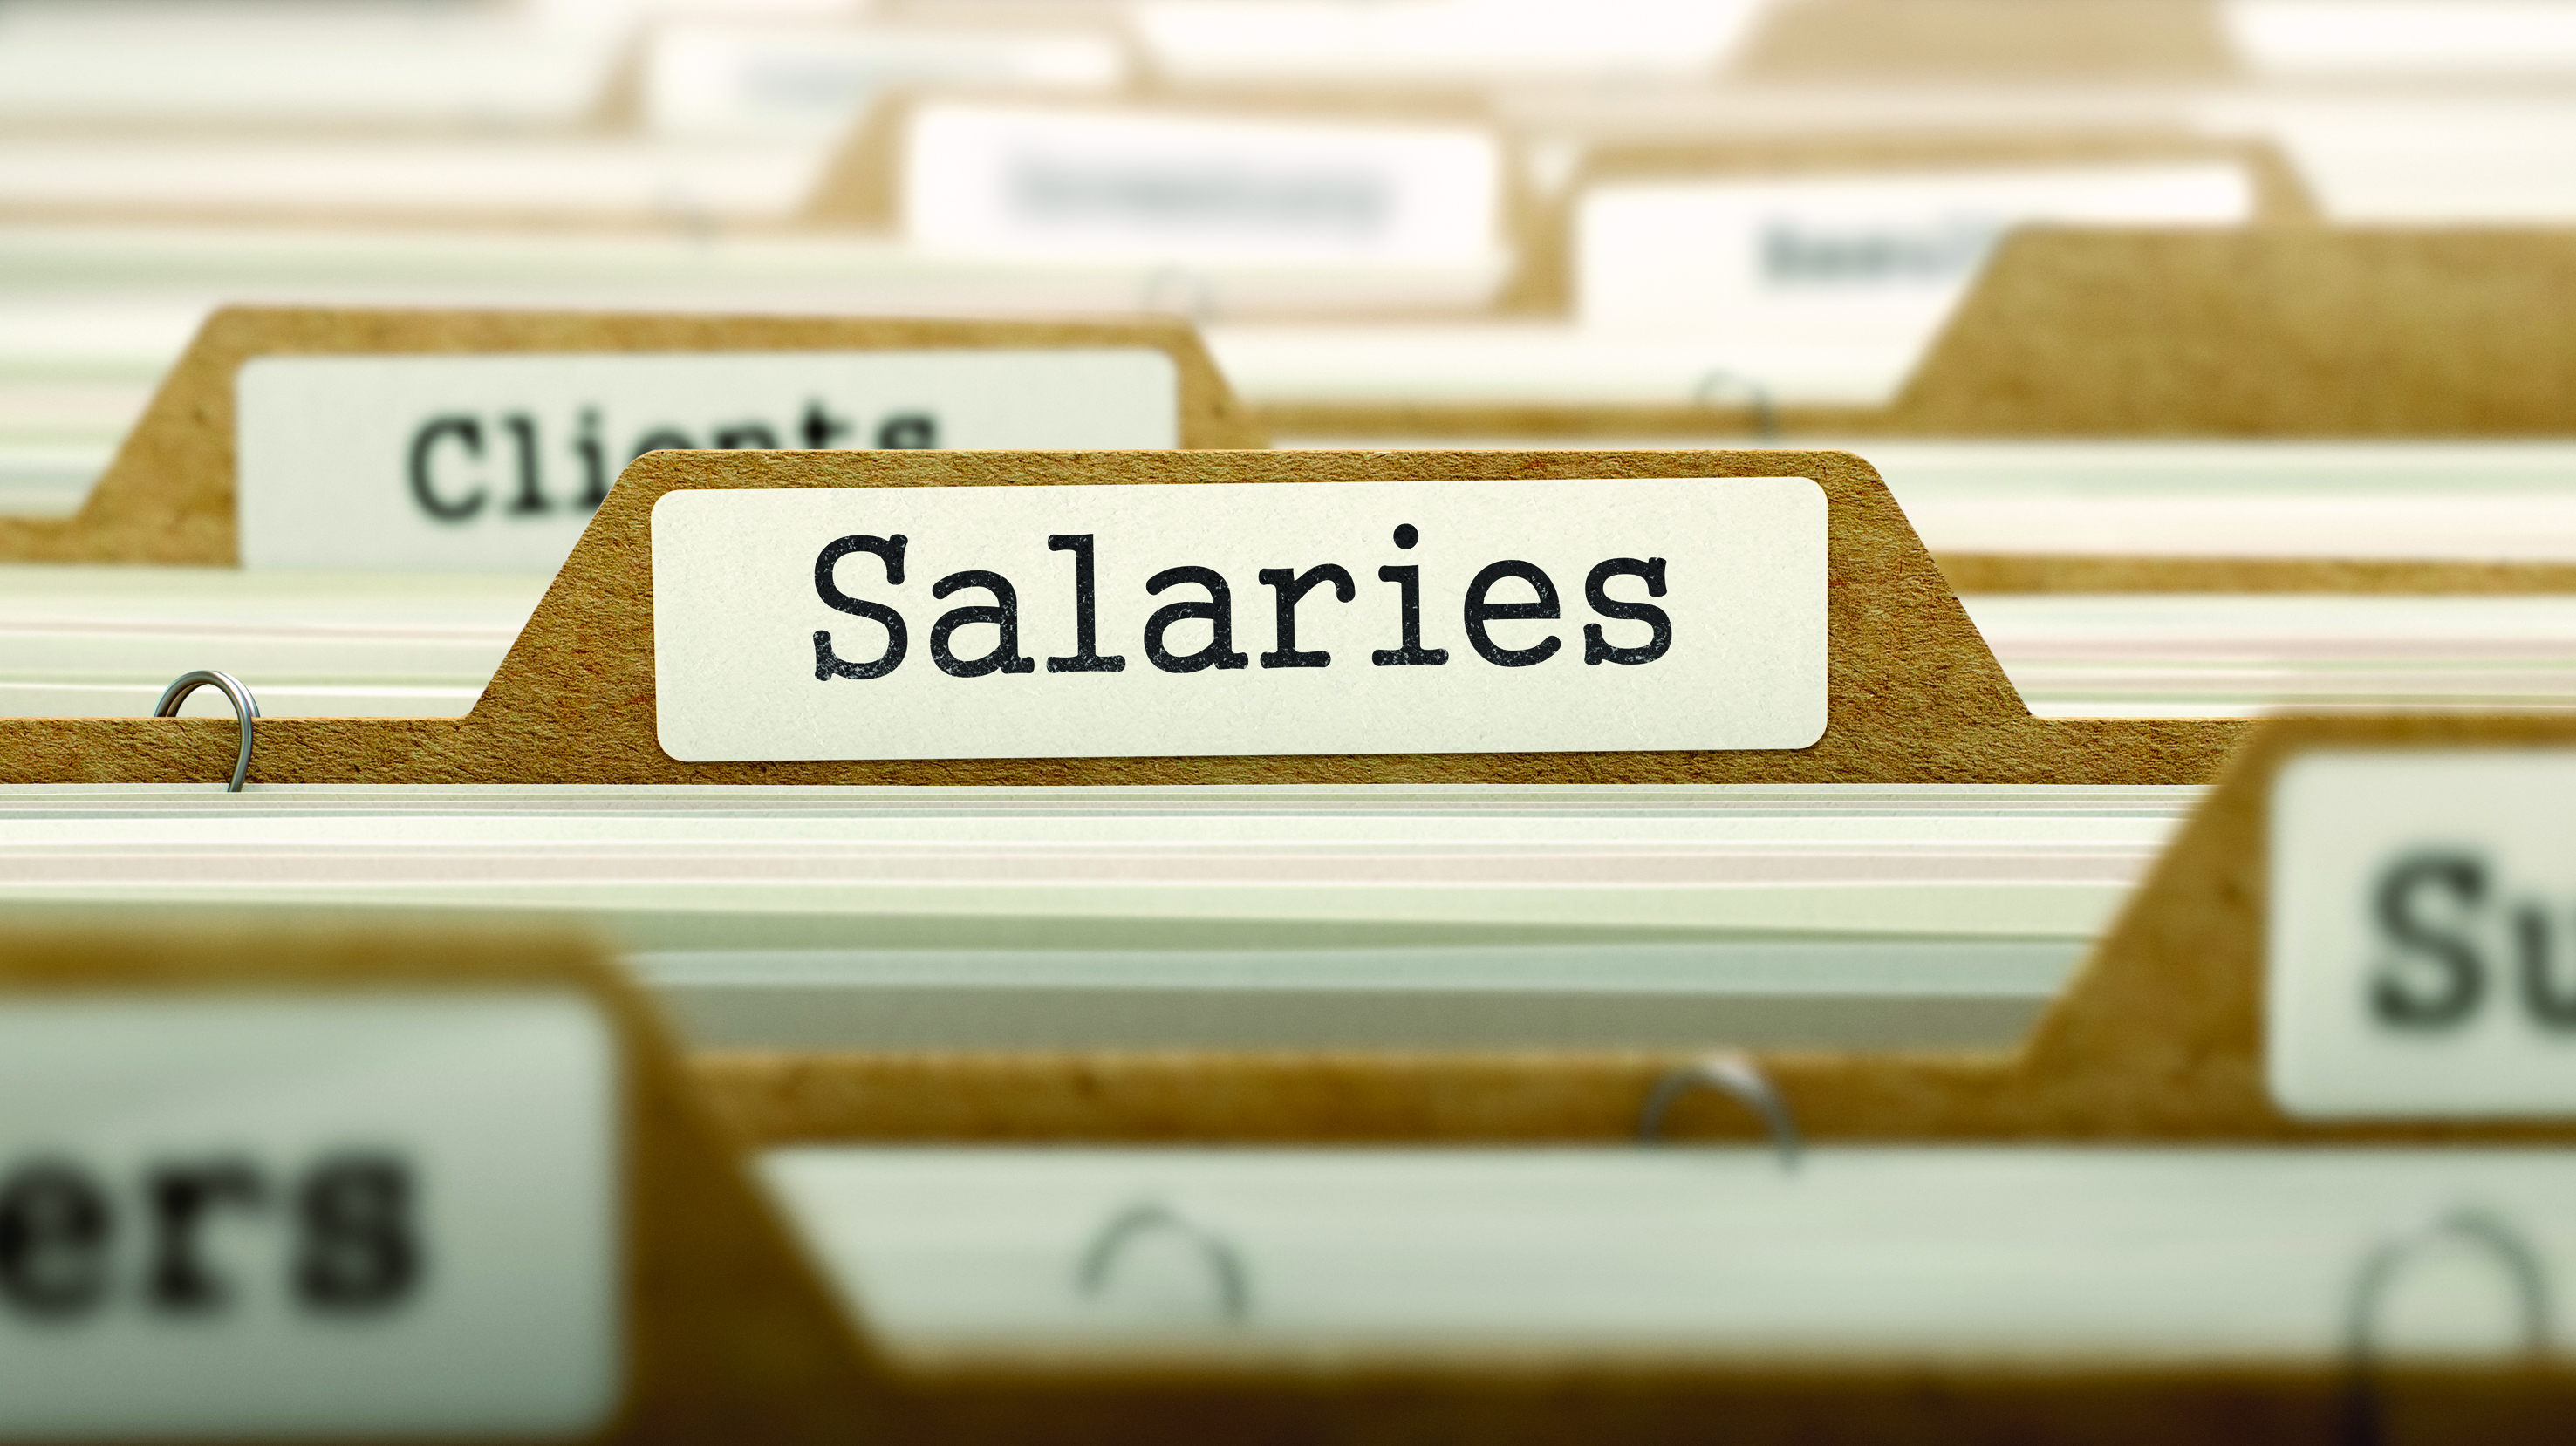 'Show us the money' say unpaid workers in Oman